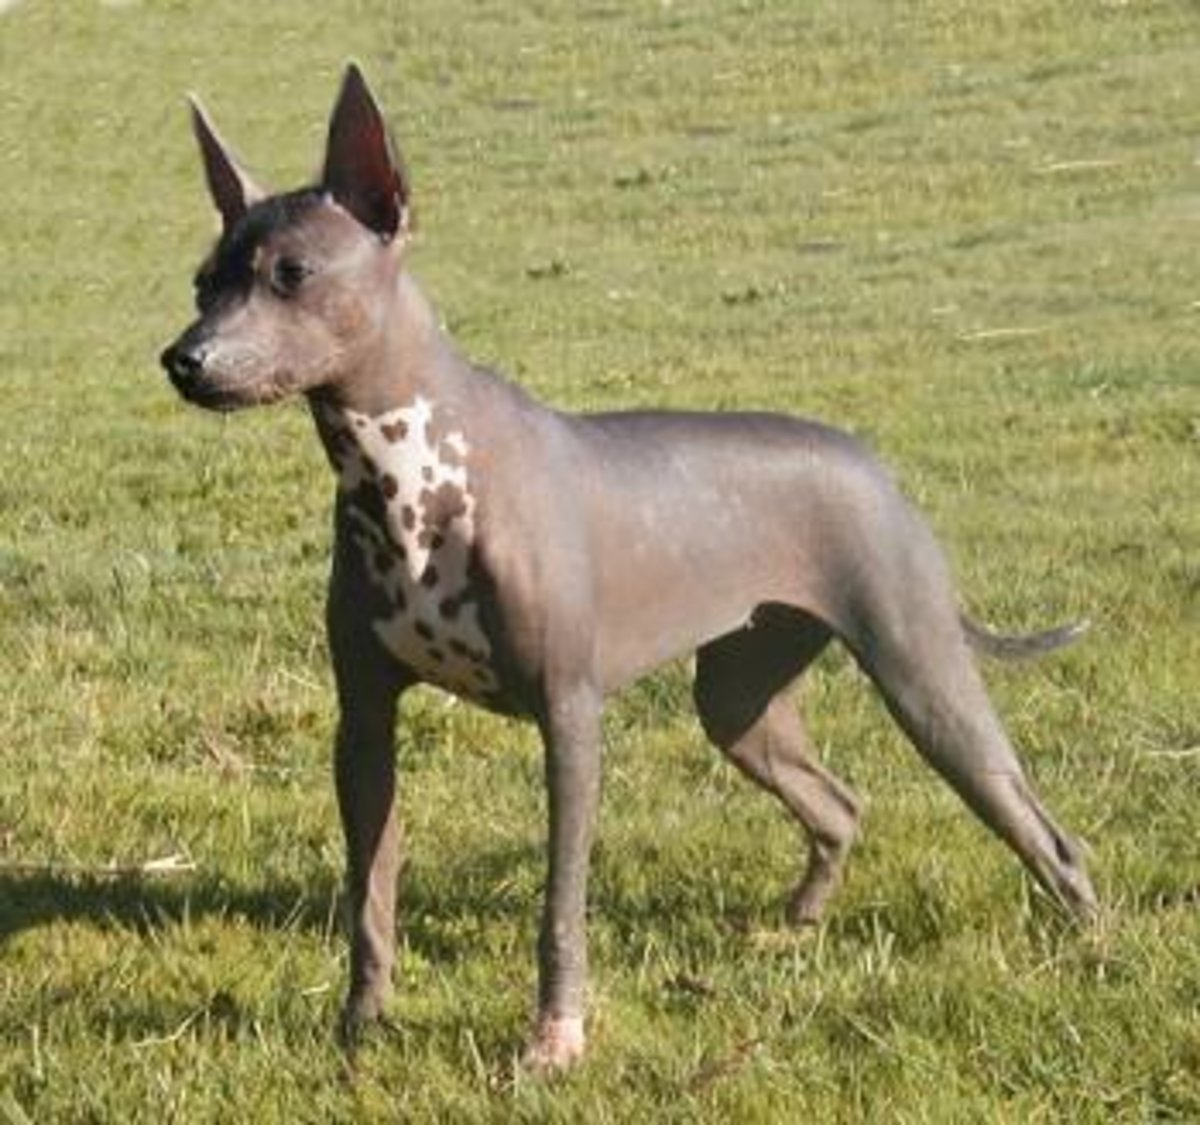 Xolos are but one type of hairless dog breeds on the market today.